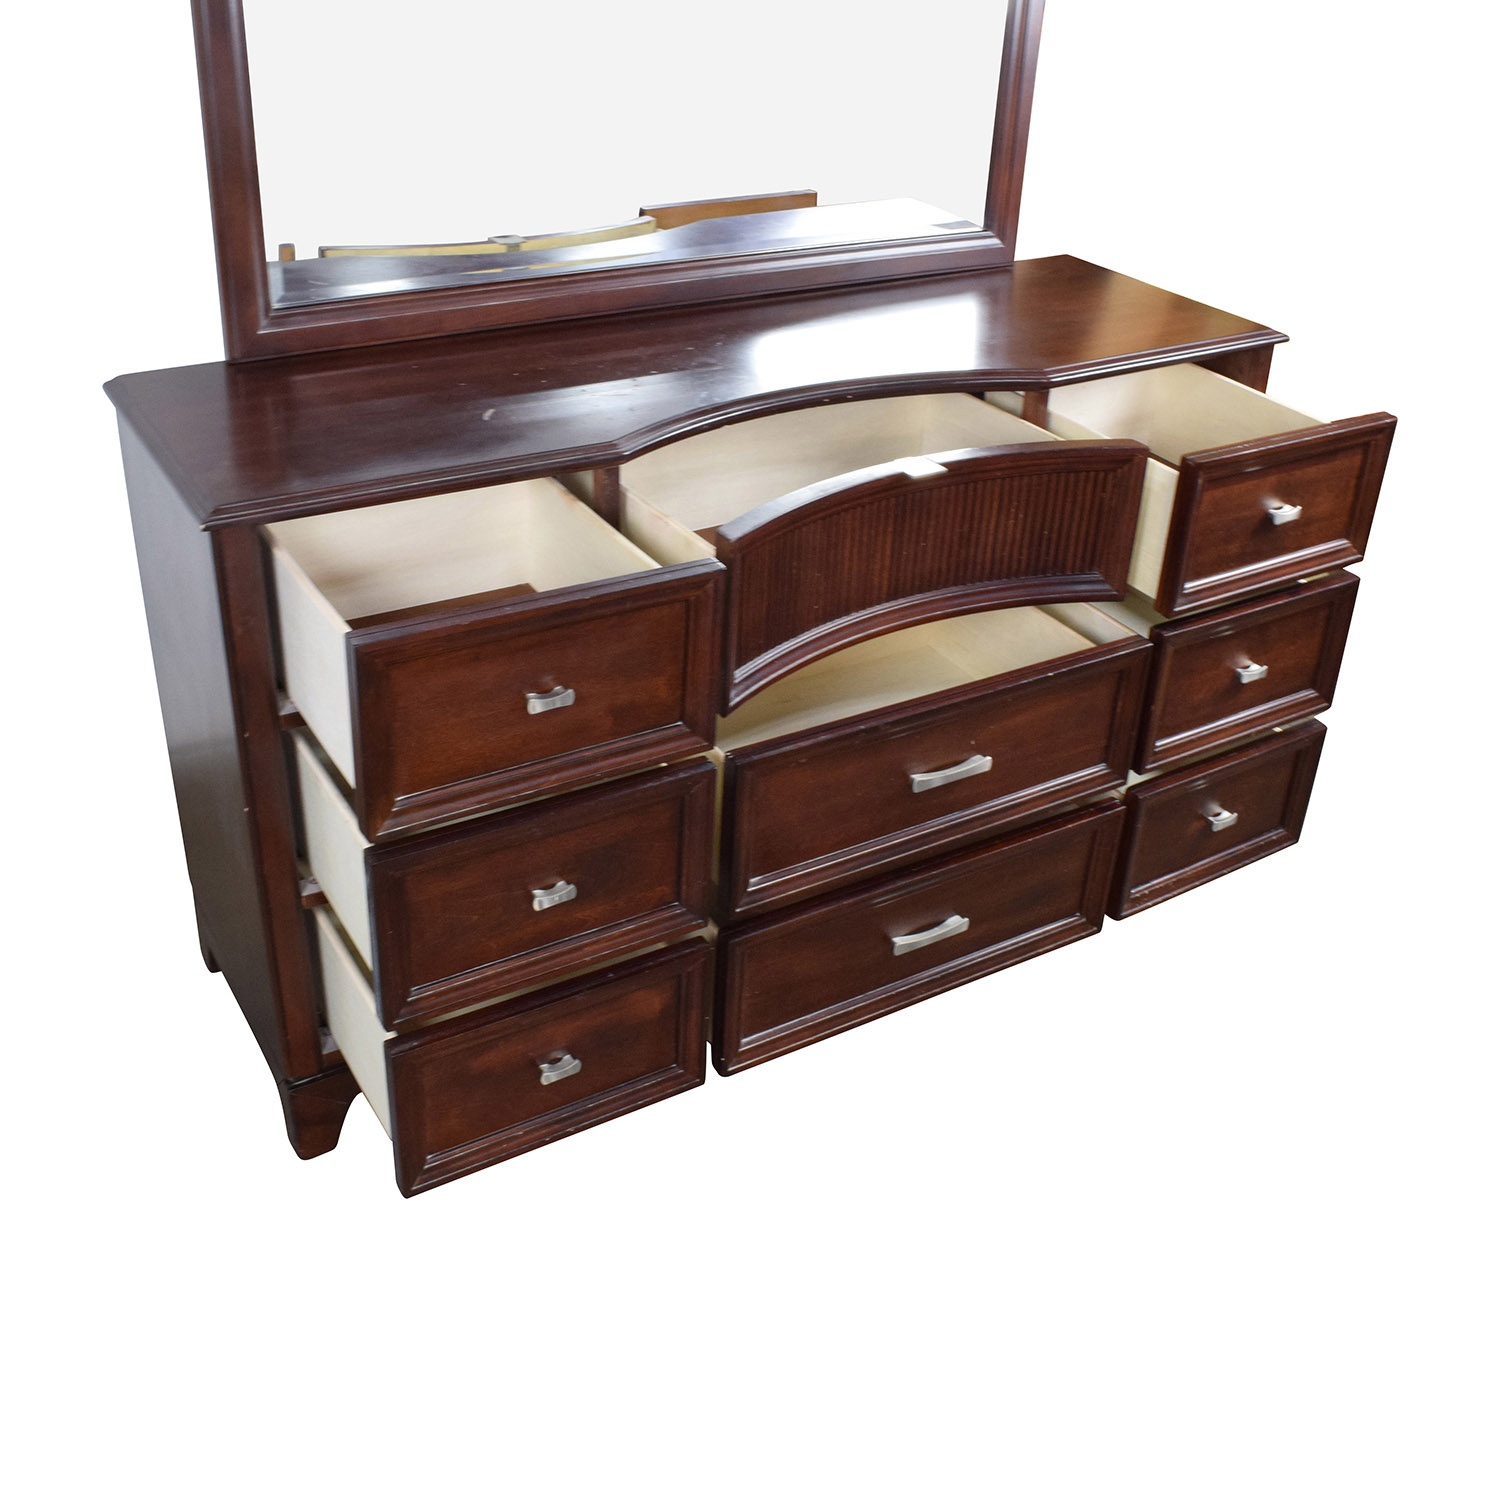 bobs furniture dressers 58 bob s furniture bob s furniture cherry wood 10891